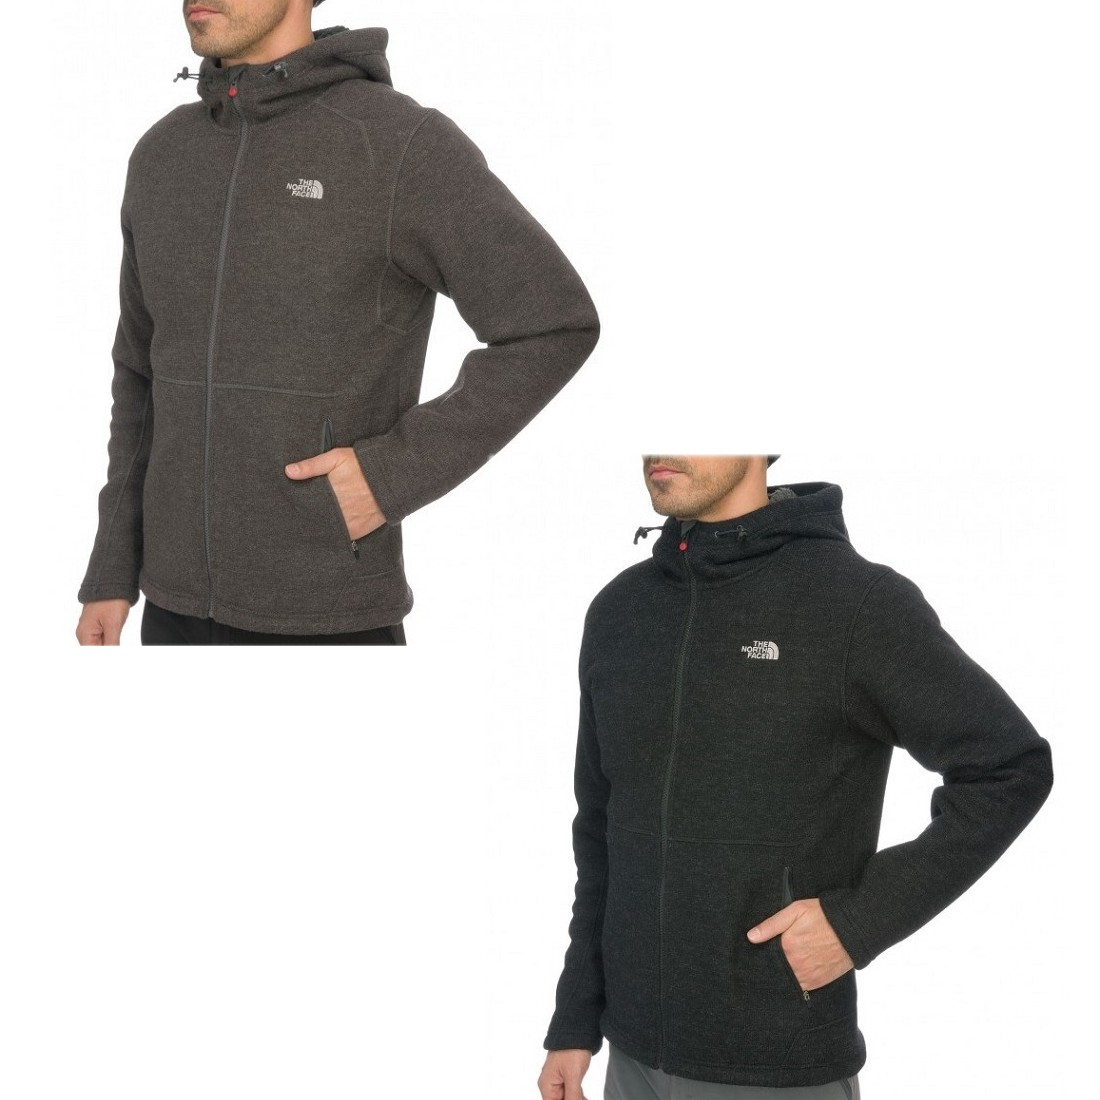 The-North-Face-Zermatt-Full-Zip-Hoodie-Jacke-Fleecejacke-Kapuzenjacke-Herren